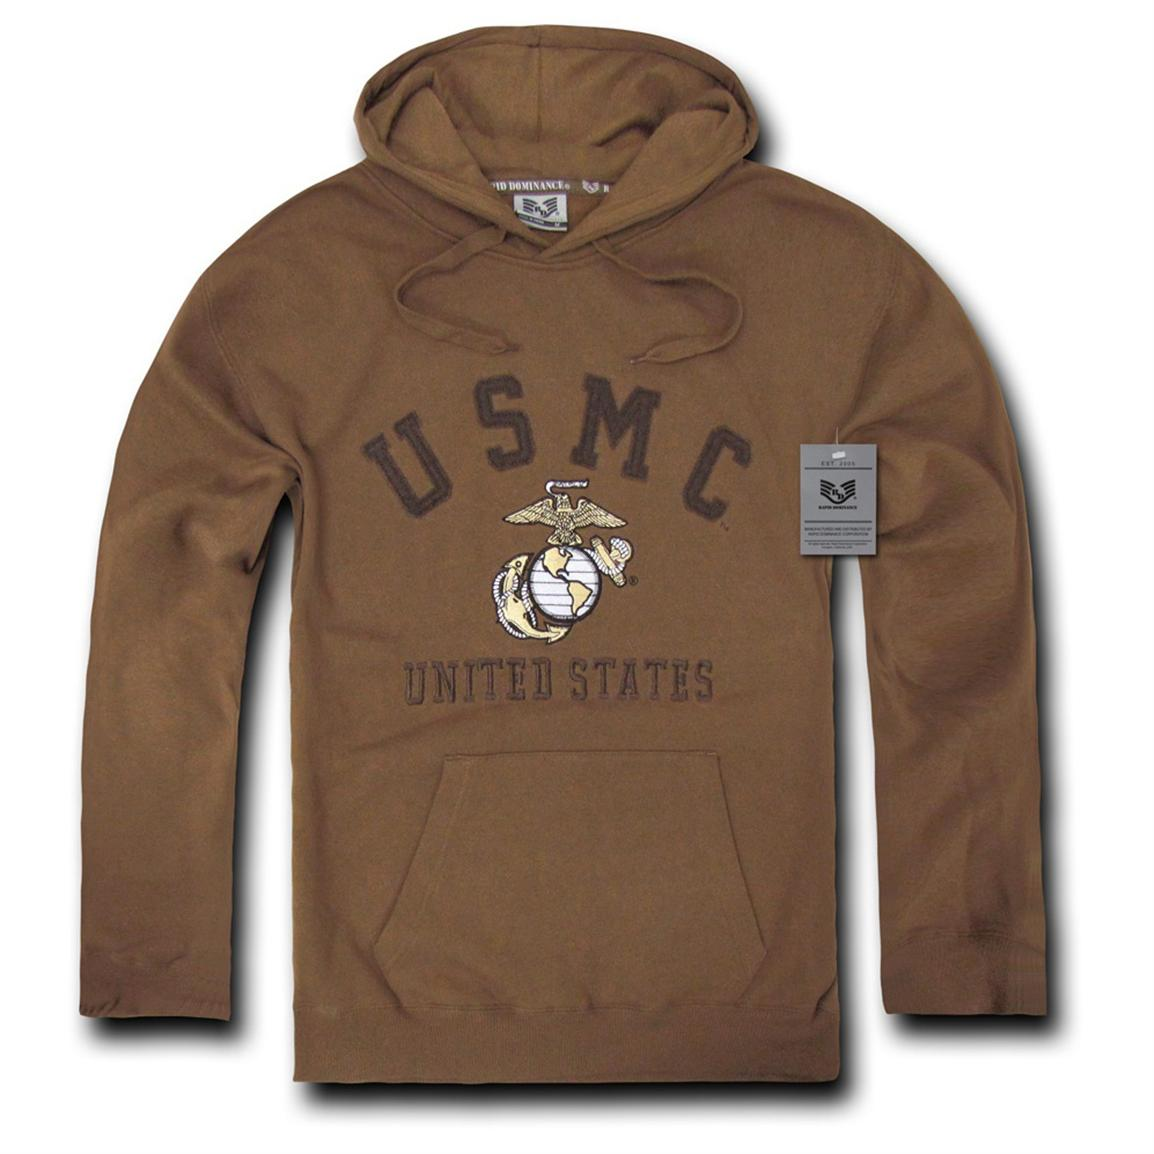 Rapid Dominance Military Fleece Pullover Hoodie, Marines Coyote